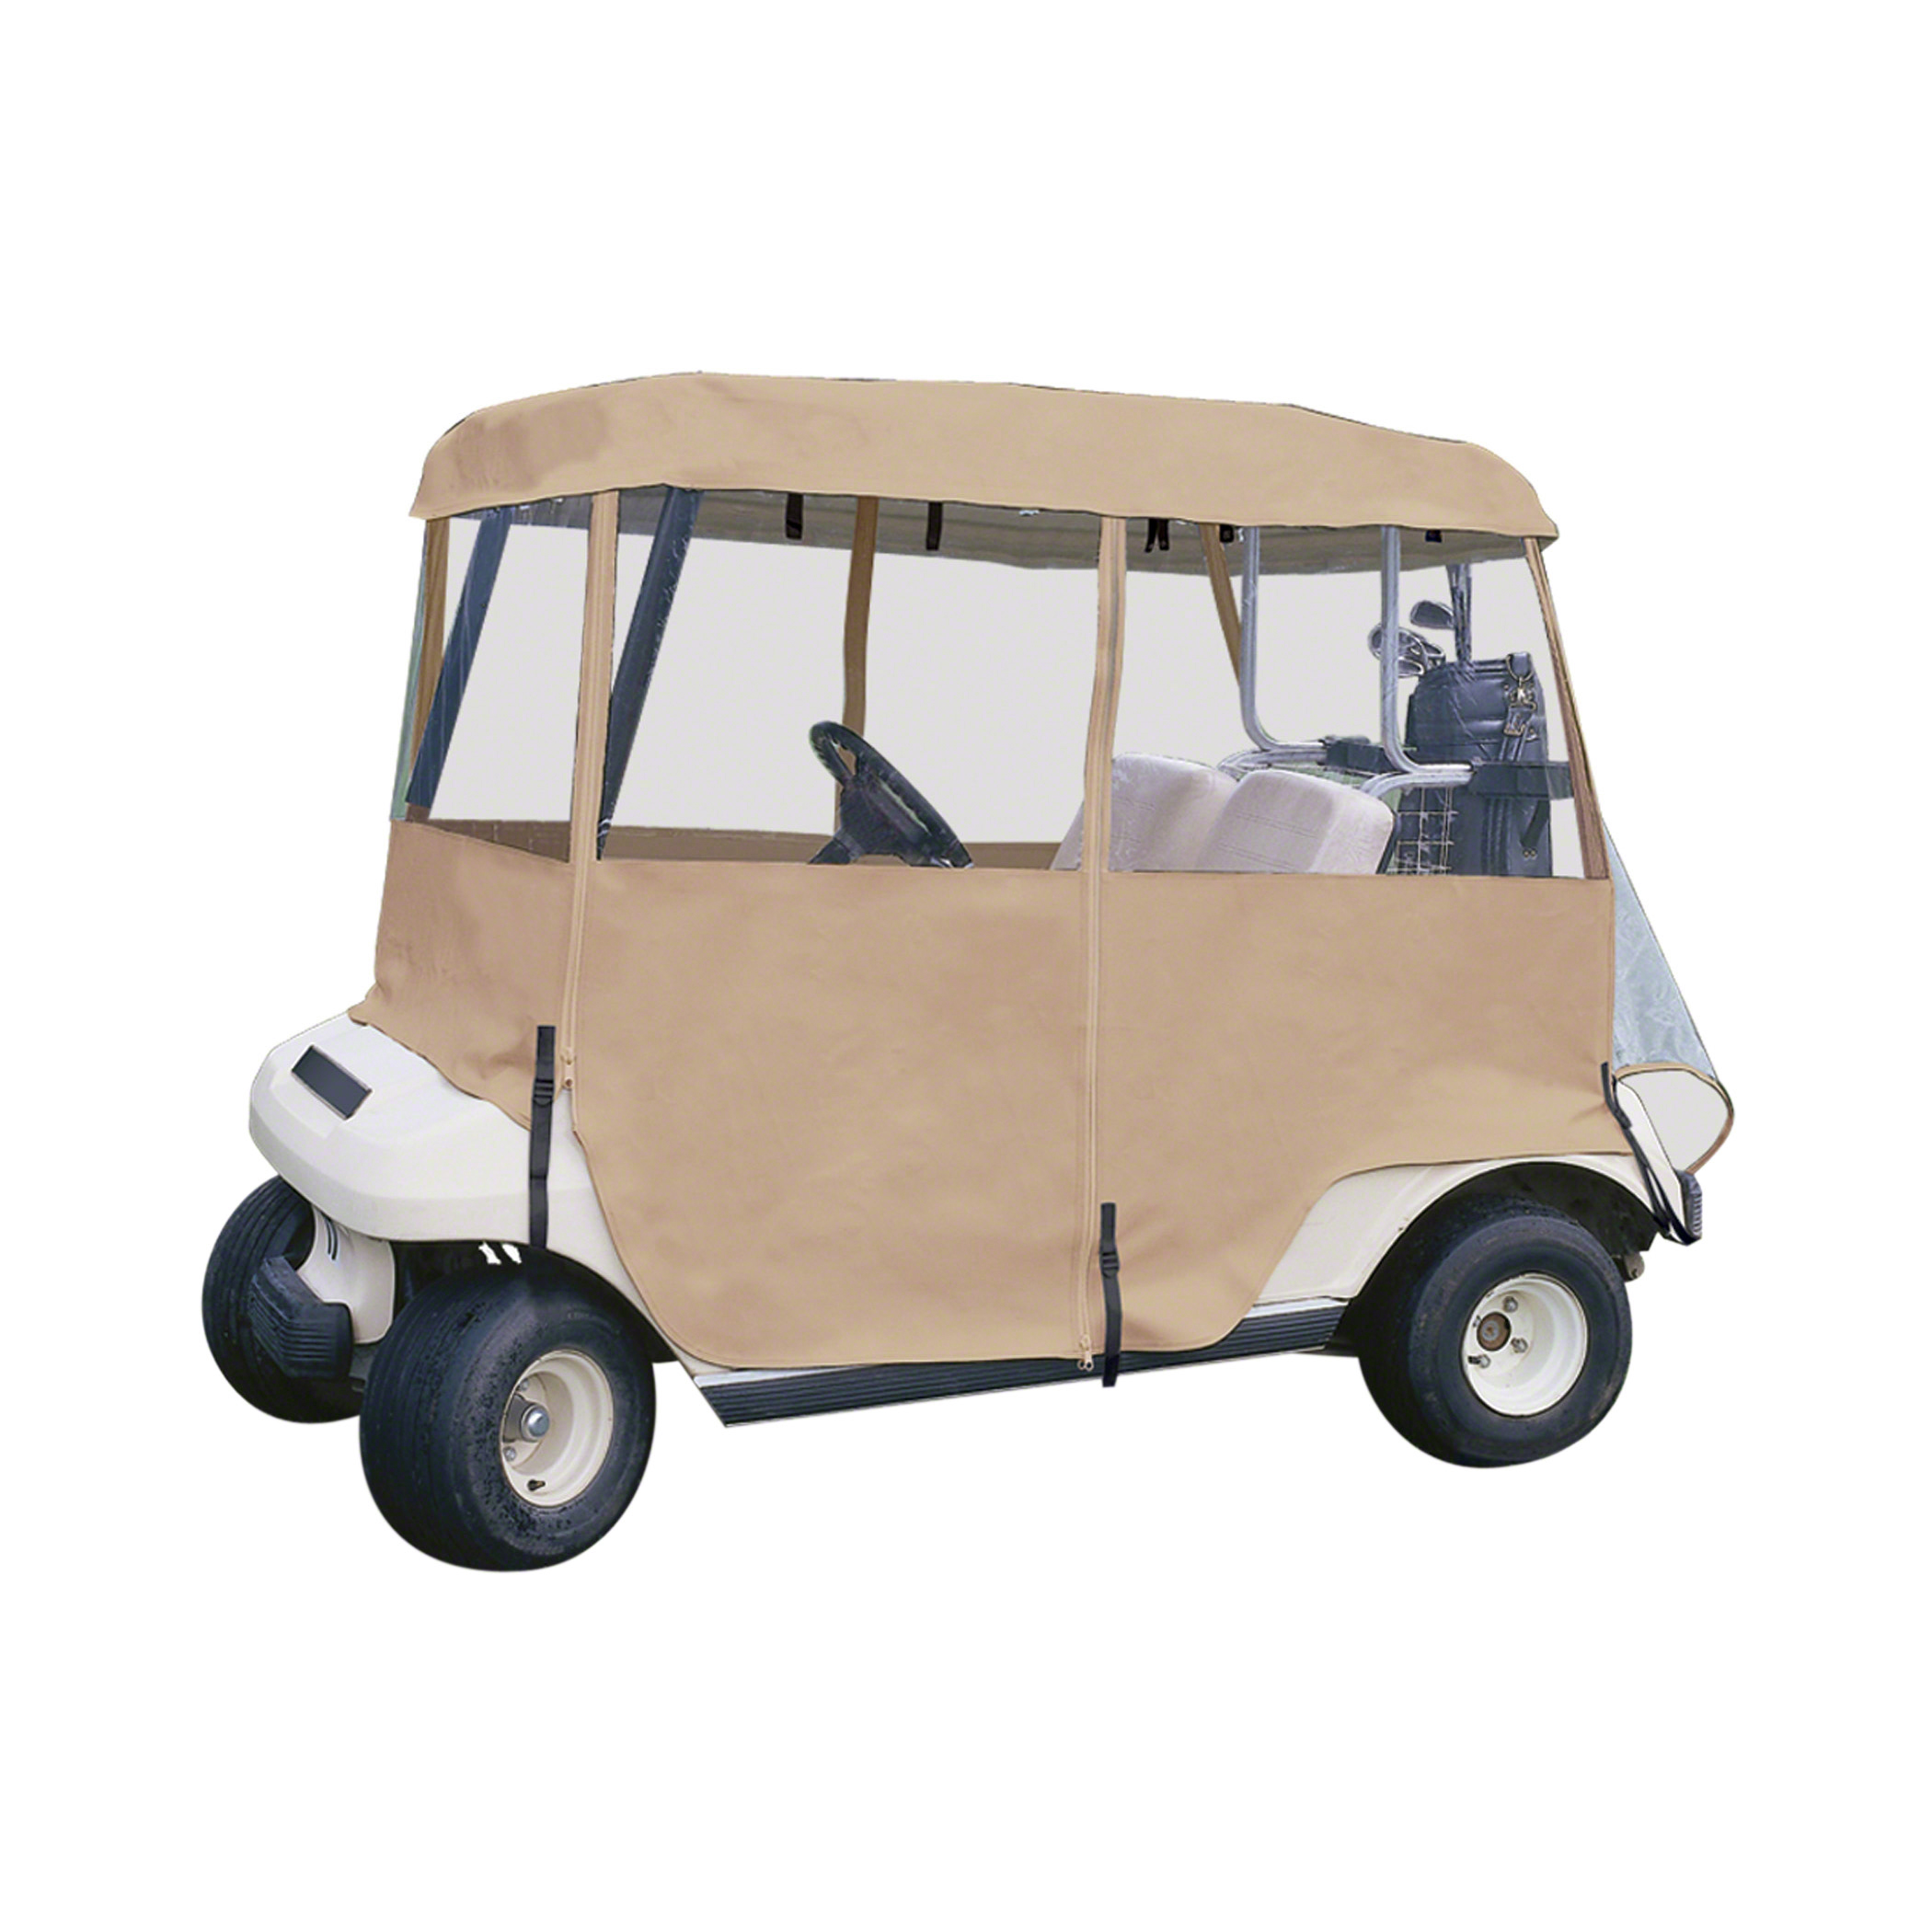 Clic Accessories Fairway 2-Person Deluxe 4-Sided Golf Cart ... on trailer design ideas, food design ideas, eagle design ideas, motorcycle design ideas, ambulance design ideas, golf decorating ideas, breakfast design ideas, truck design ideas, pool design ideas, heavy equipment design ideas, van design ideas, jeep design ideas, rv design ideas, golf carts vehicle, automotive design ideas, car design ideas, computer design ideas, wheel design ideas, commercial design ideas, john deere design ideas,